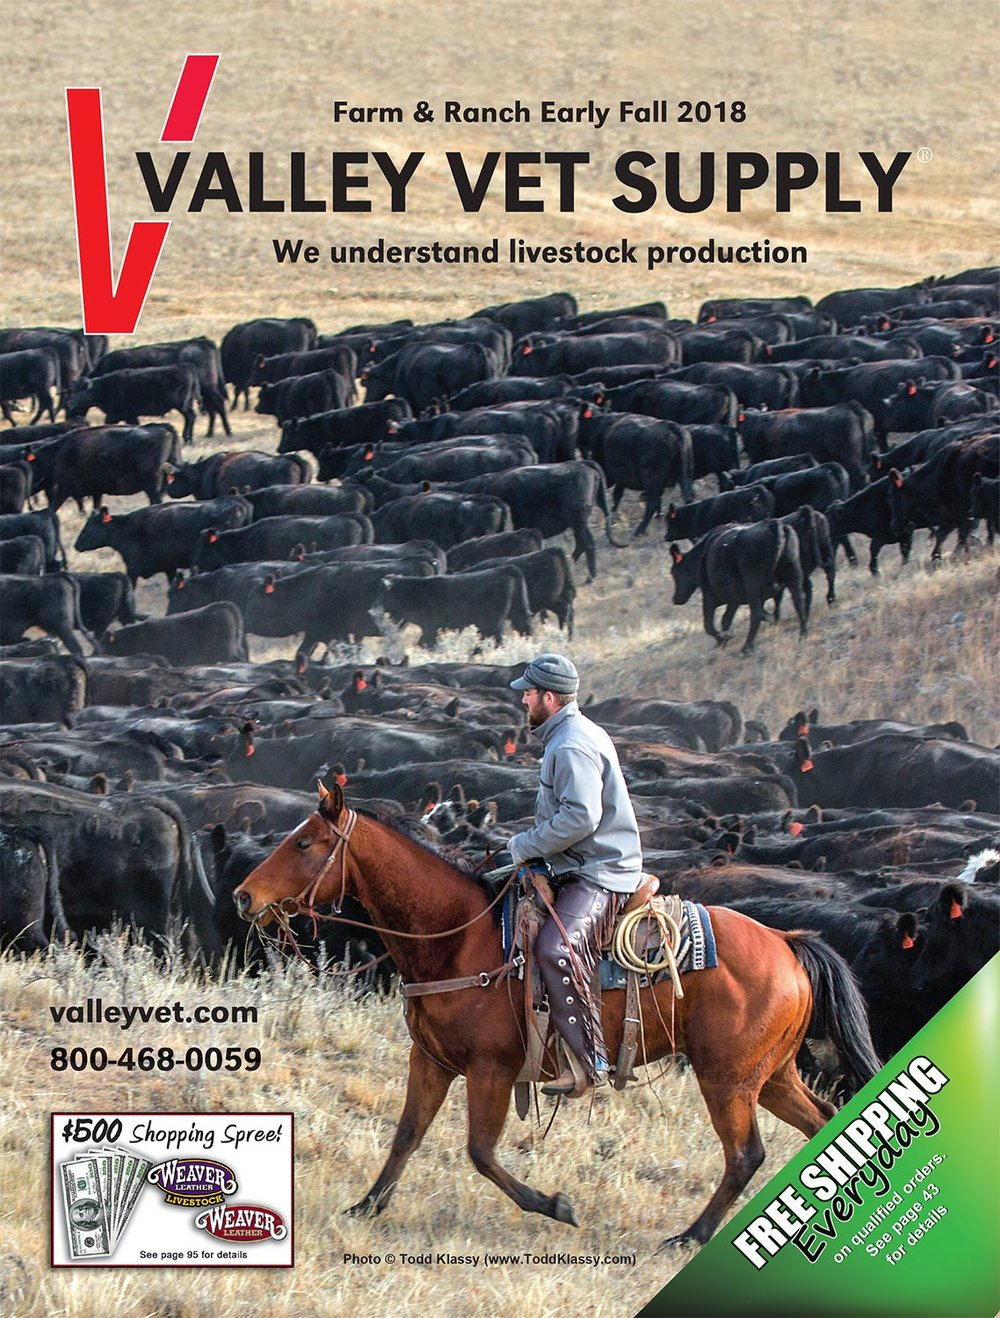 Stock Images of Black Angus Cattle on Cover of Valley Vet Supply Catalog